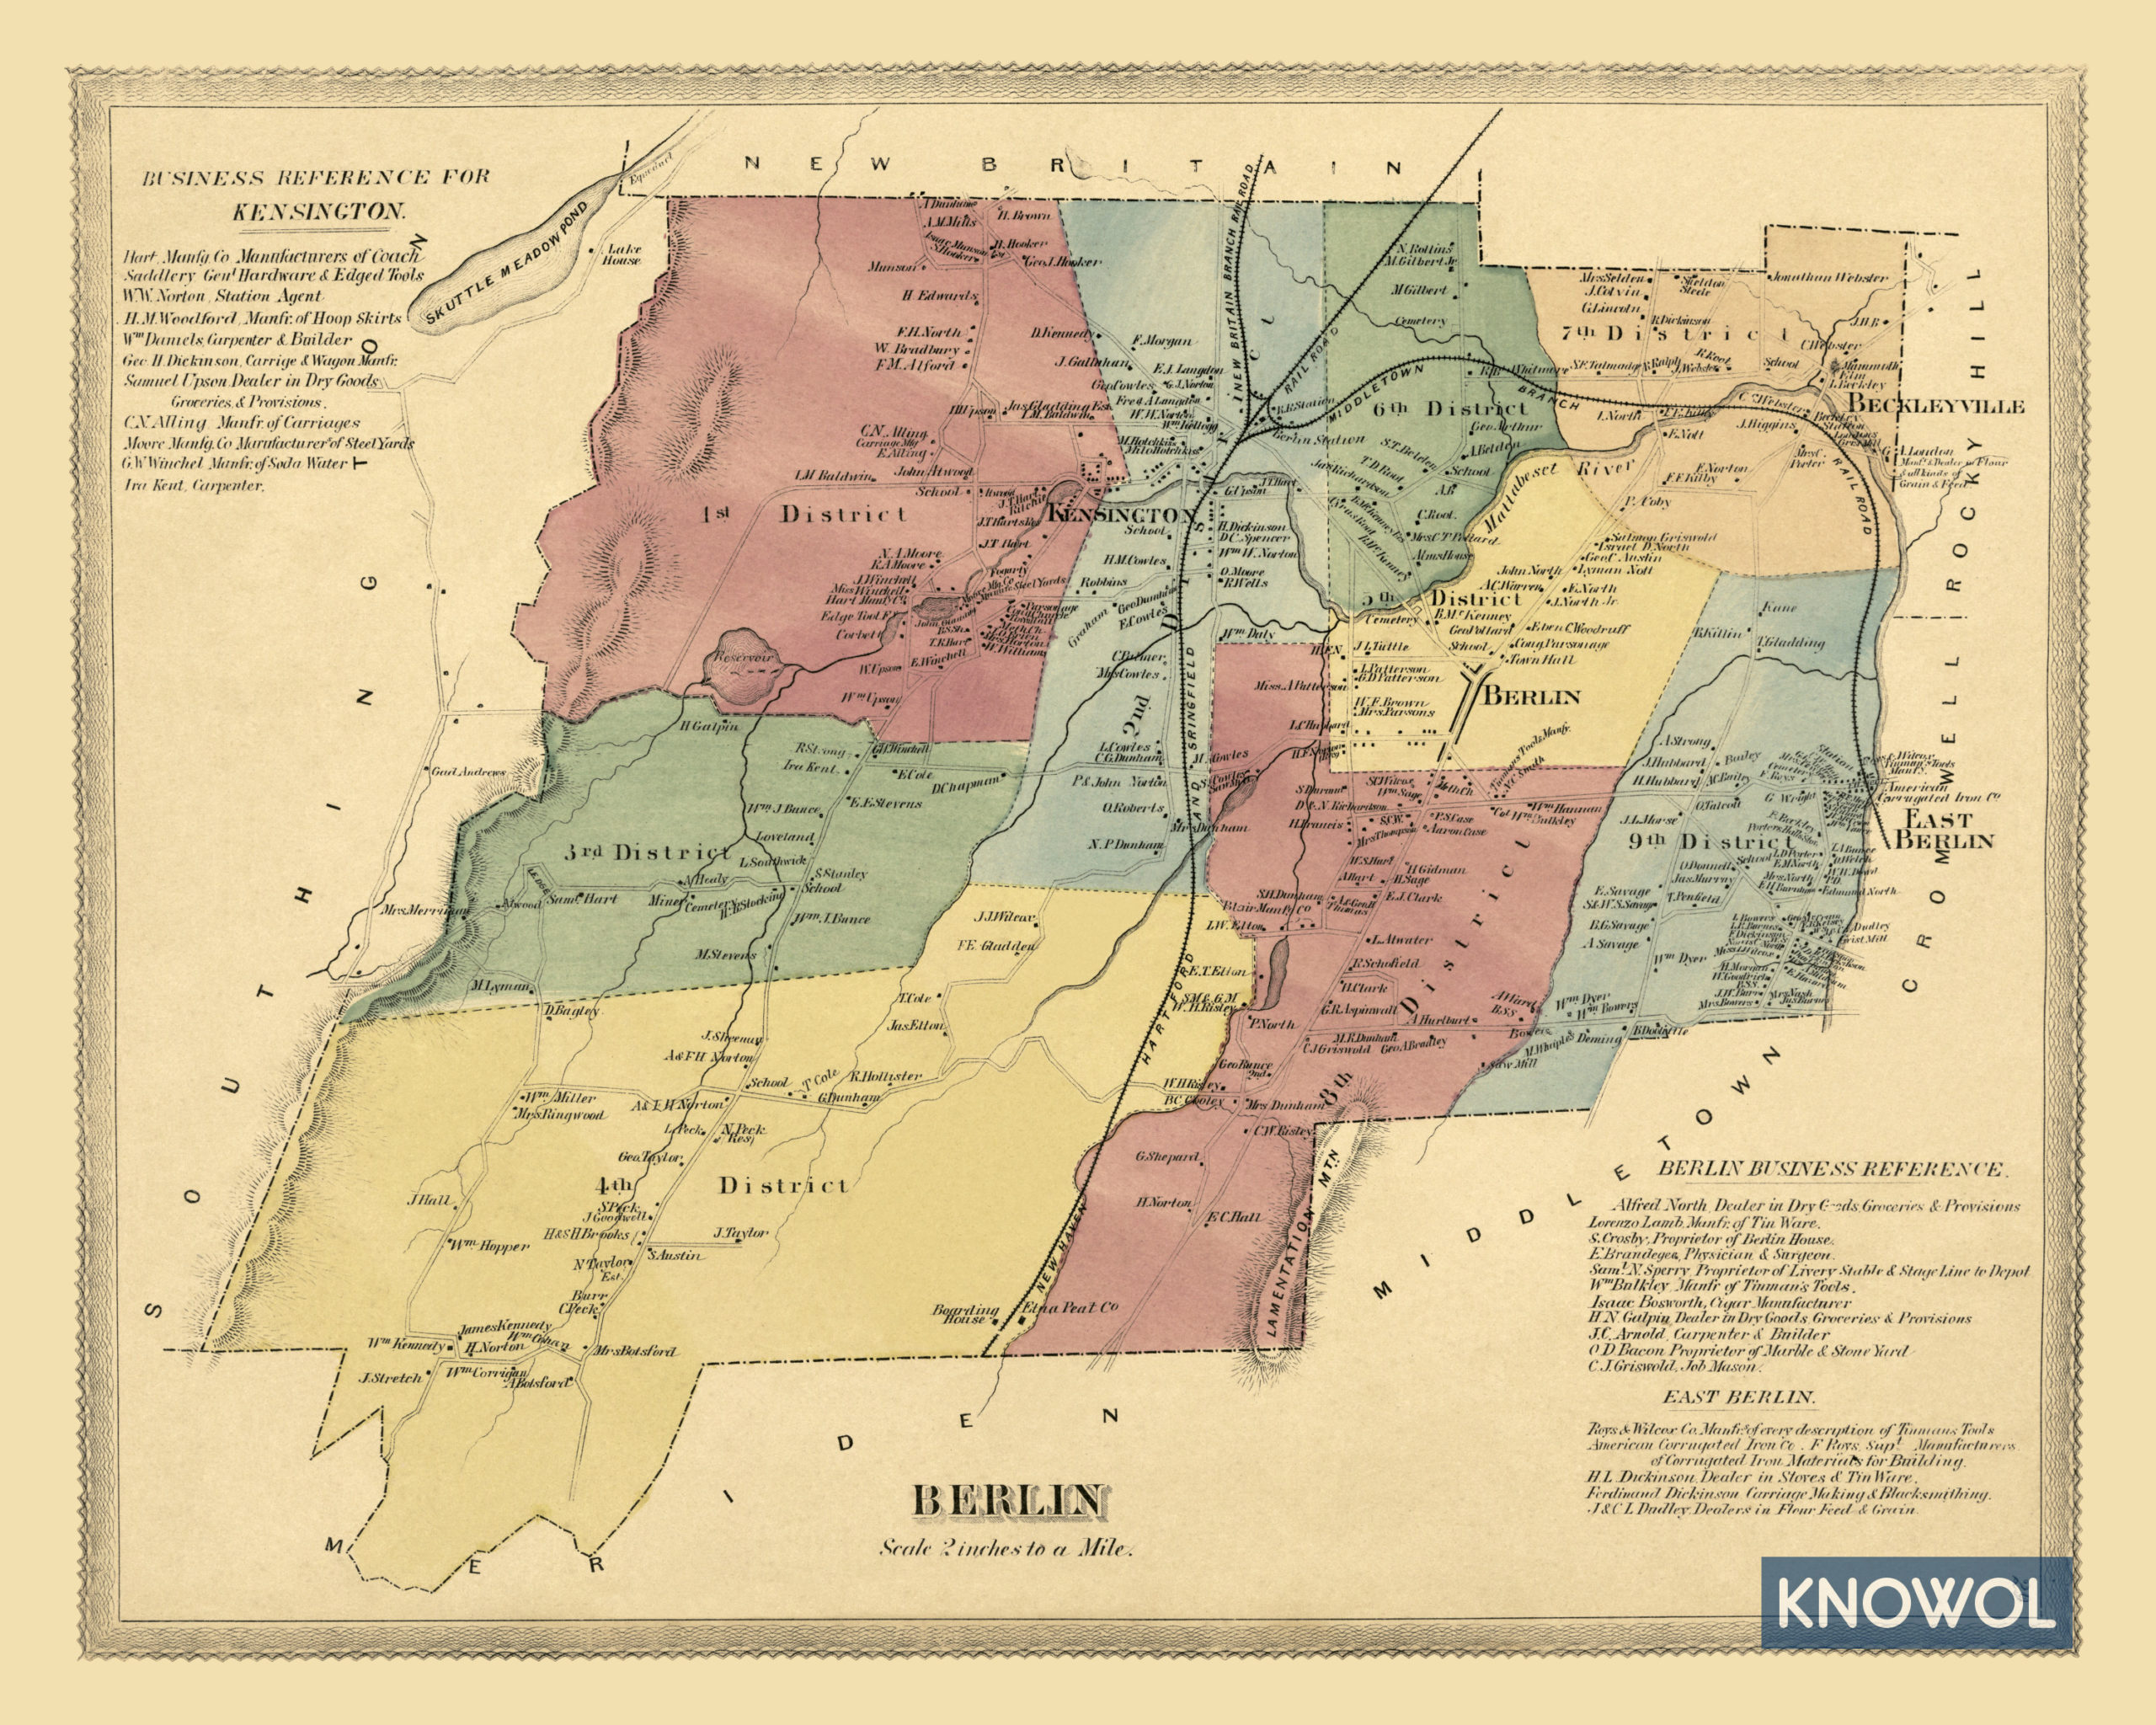 Historic landowners map of Berlin, CT from 1869 - KNOWOL